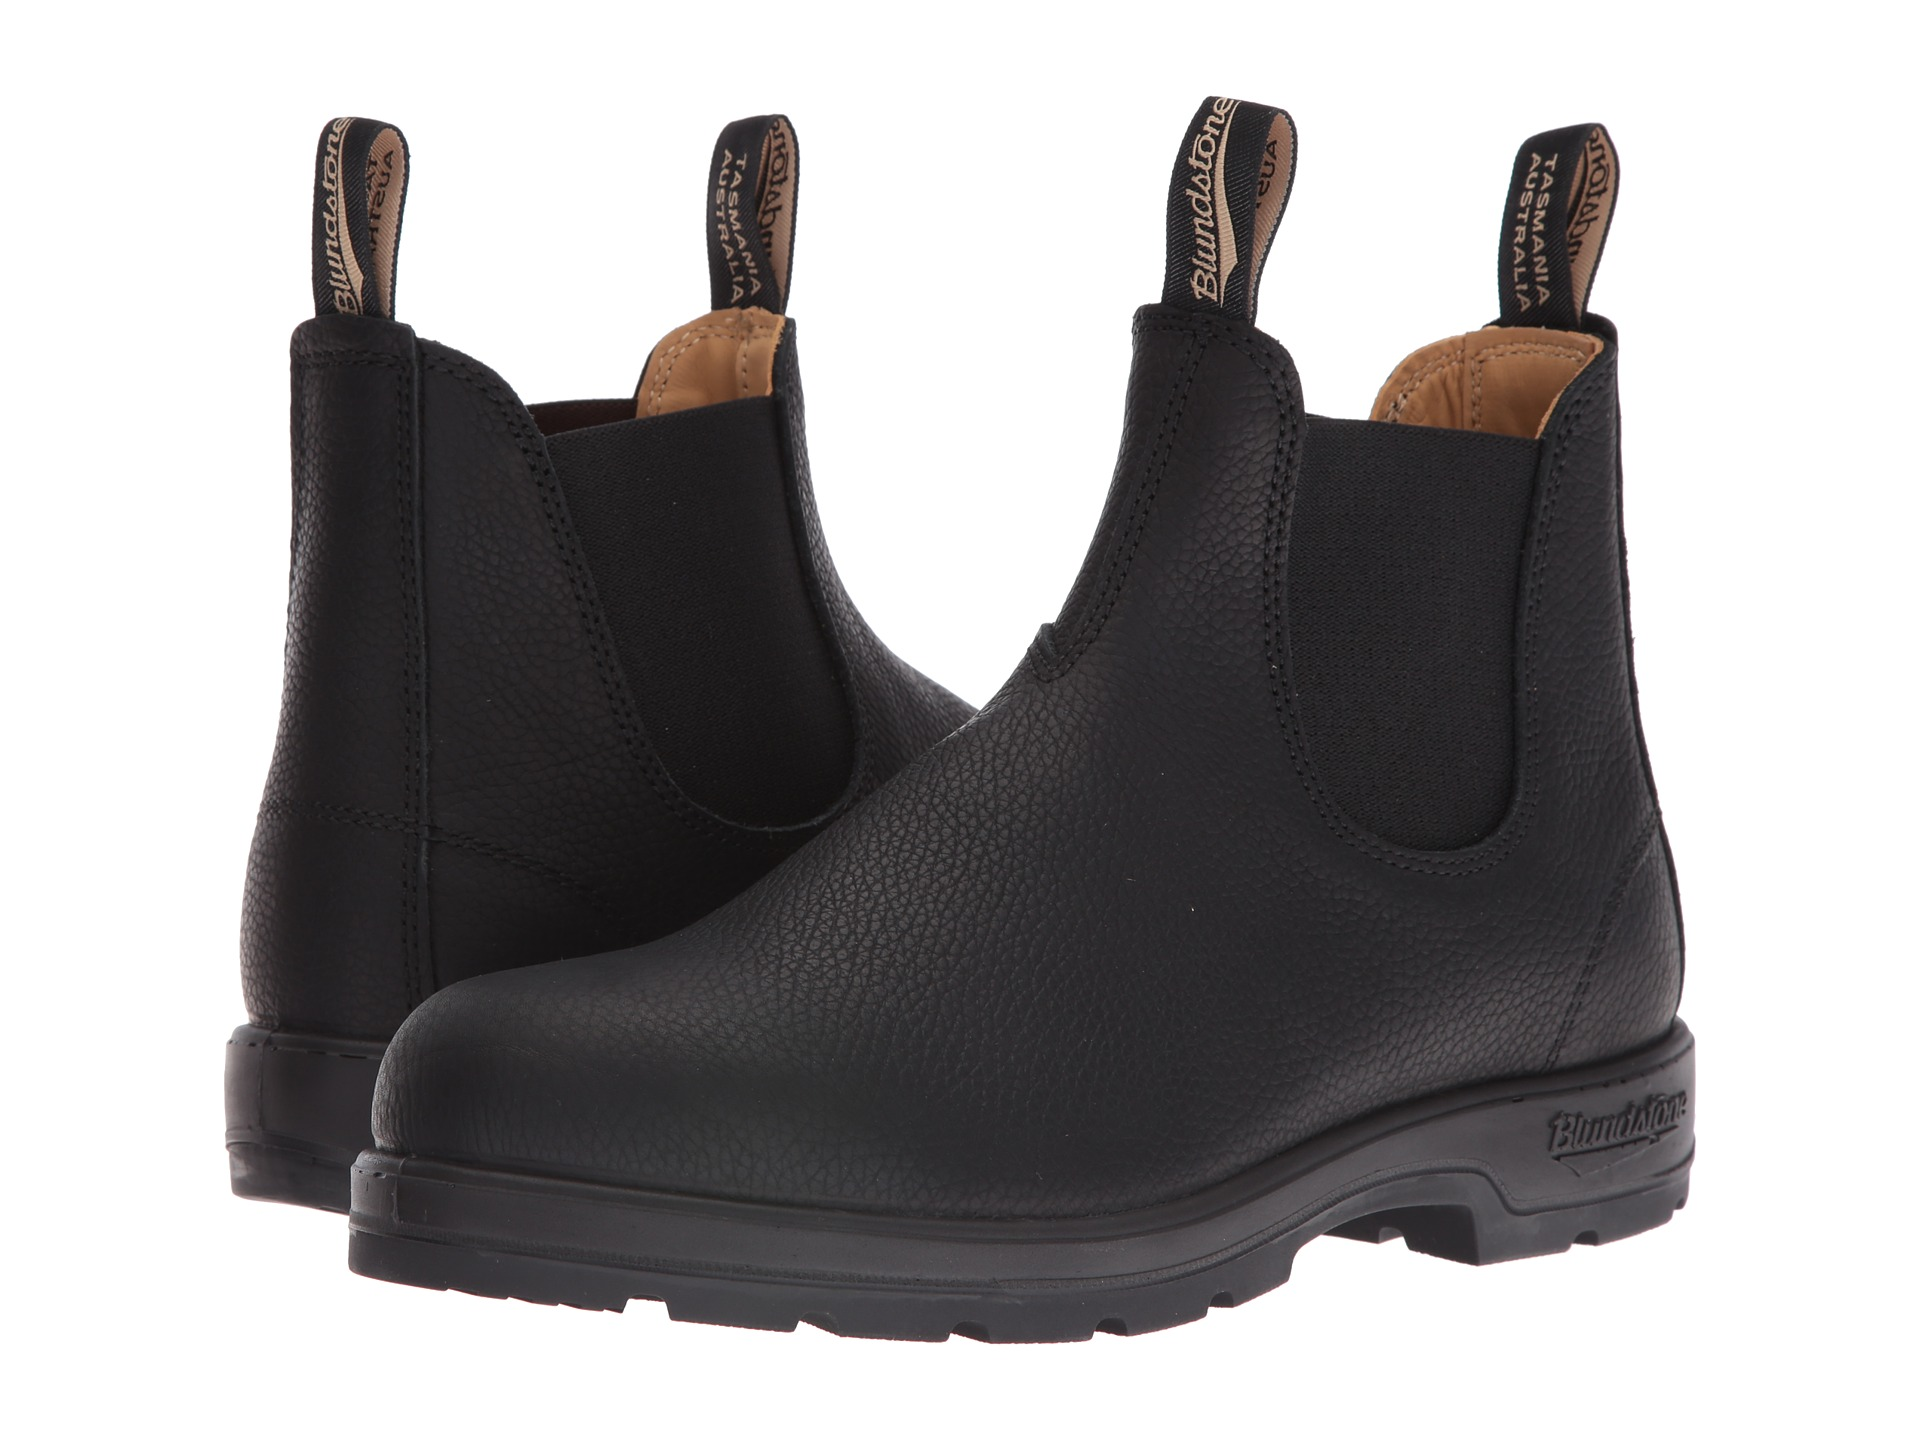 blundstone 1447 at zappos